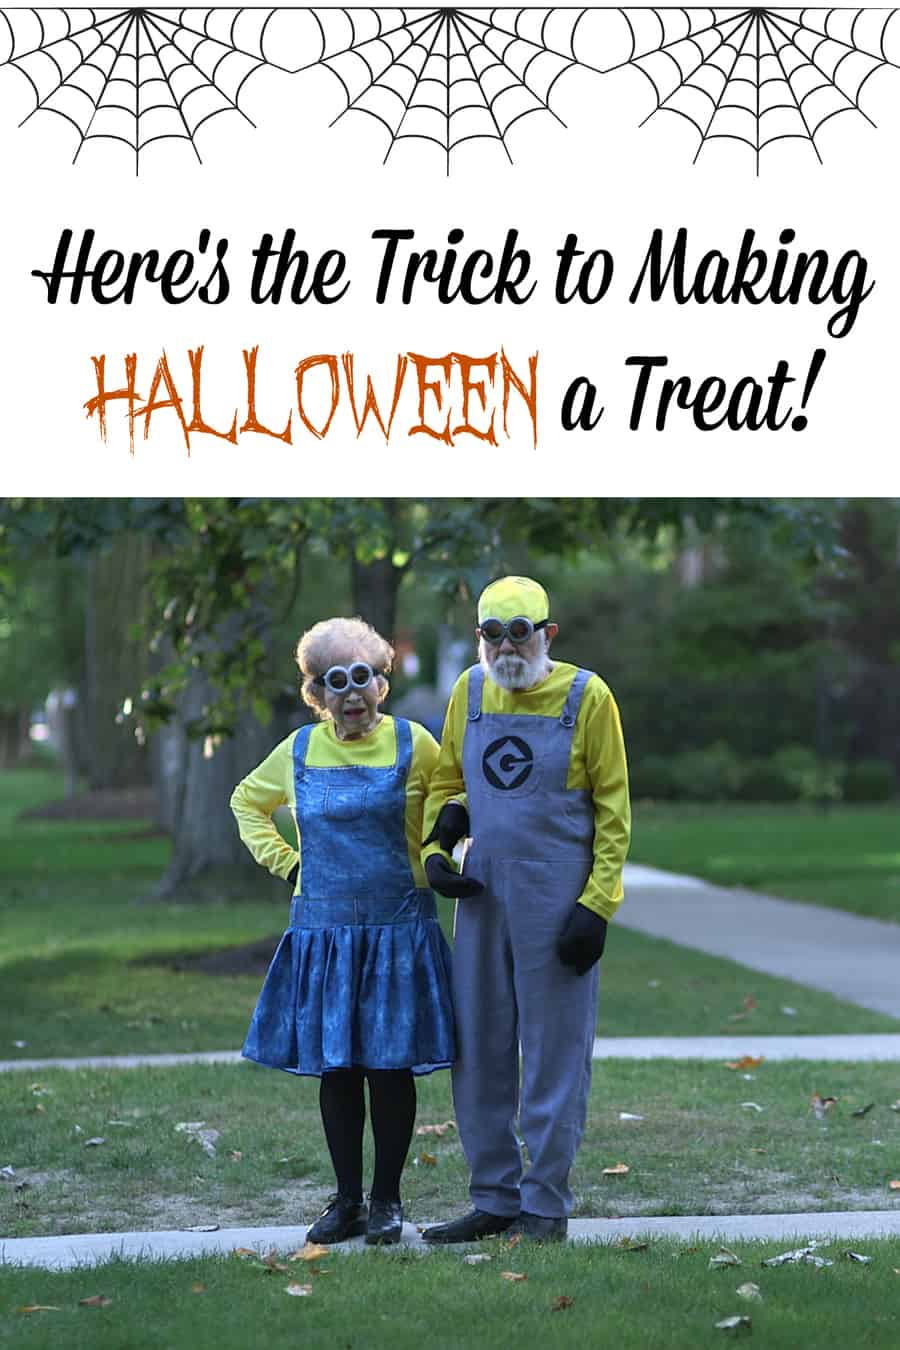 Here's the Trick to Making Halloween a Treat #TrickTreat